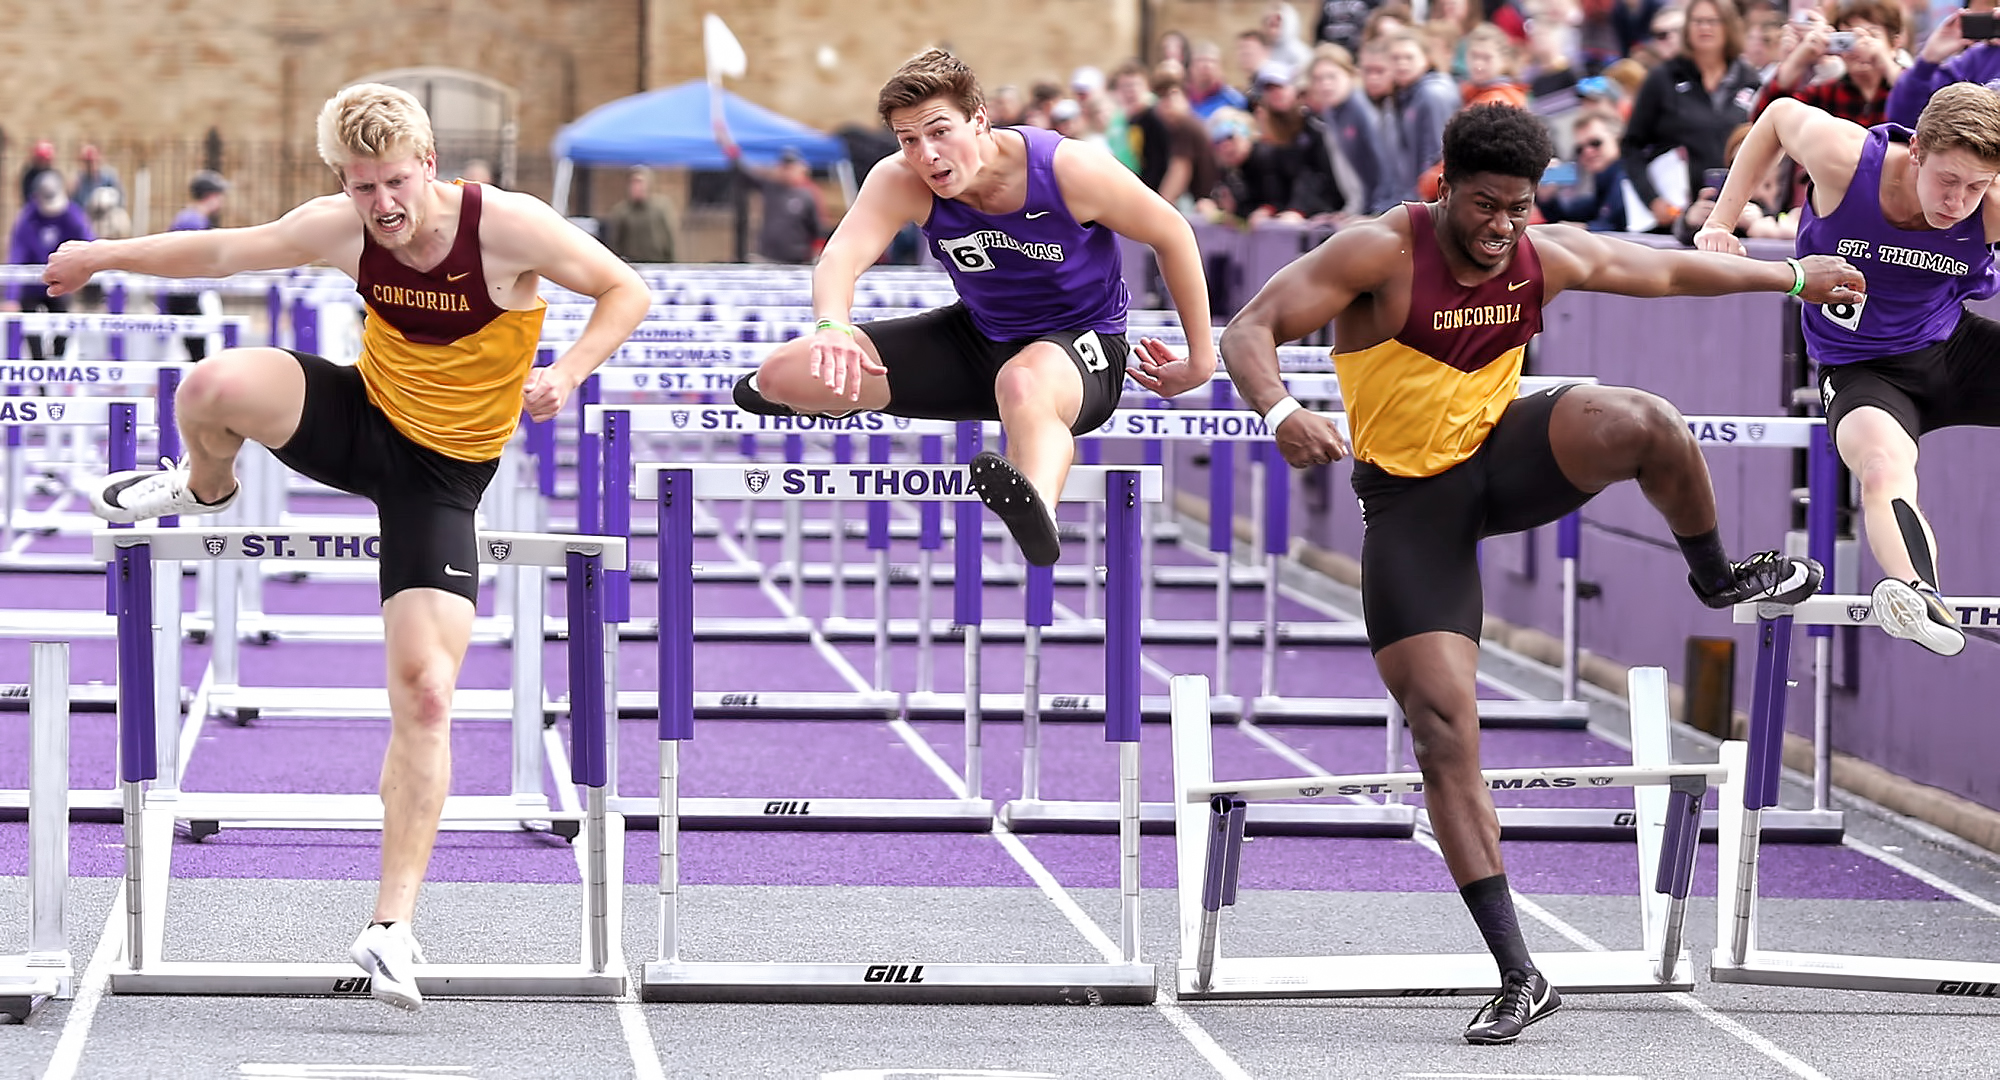 Willie Julkes (R) and Matt Bye both clear the last hurdle on their way to Top 5 finishes in the 110-meter hurdles at the MIAC Meet. (Photo courtesy of Nathan Lodermeier).